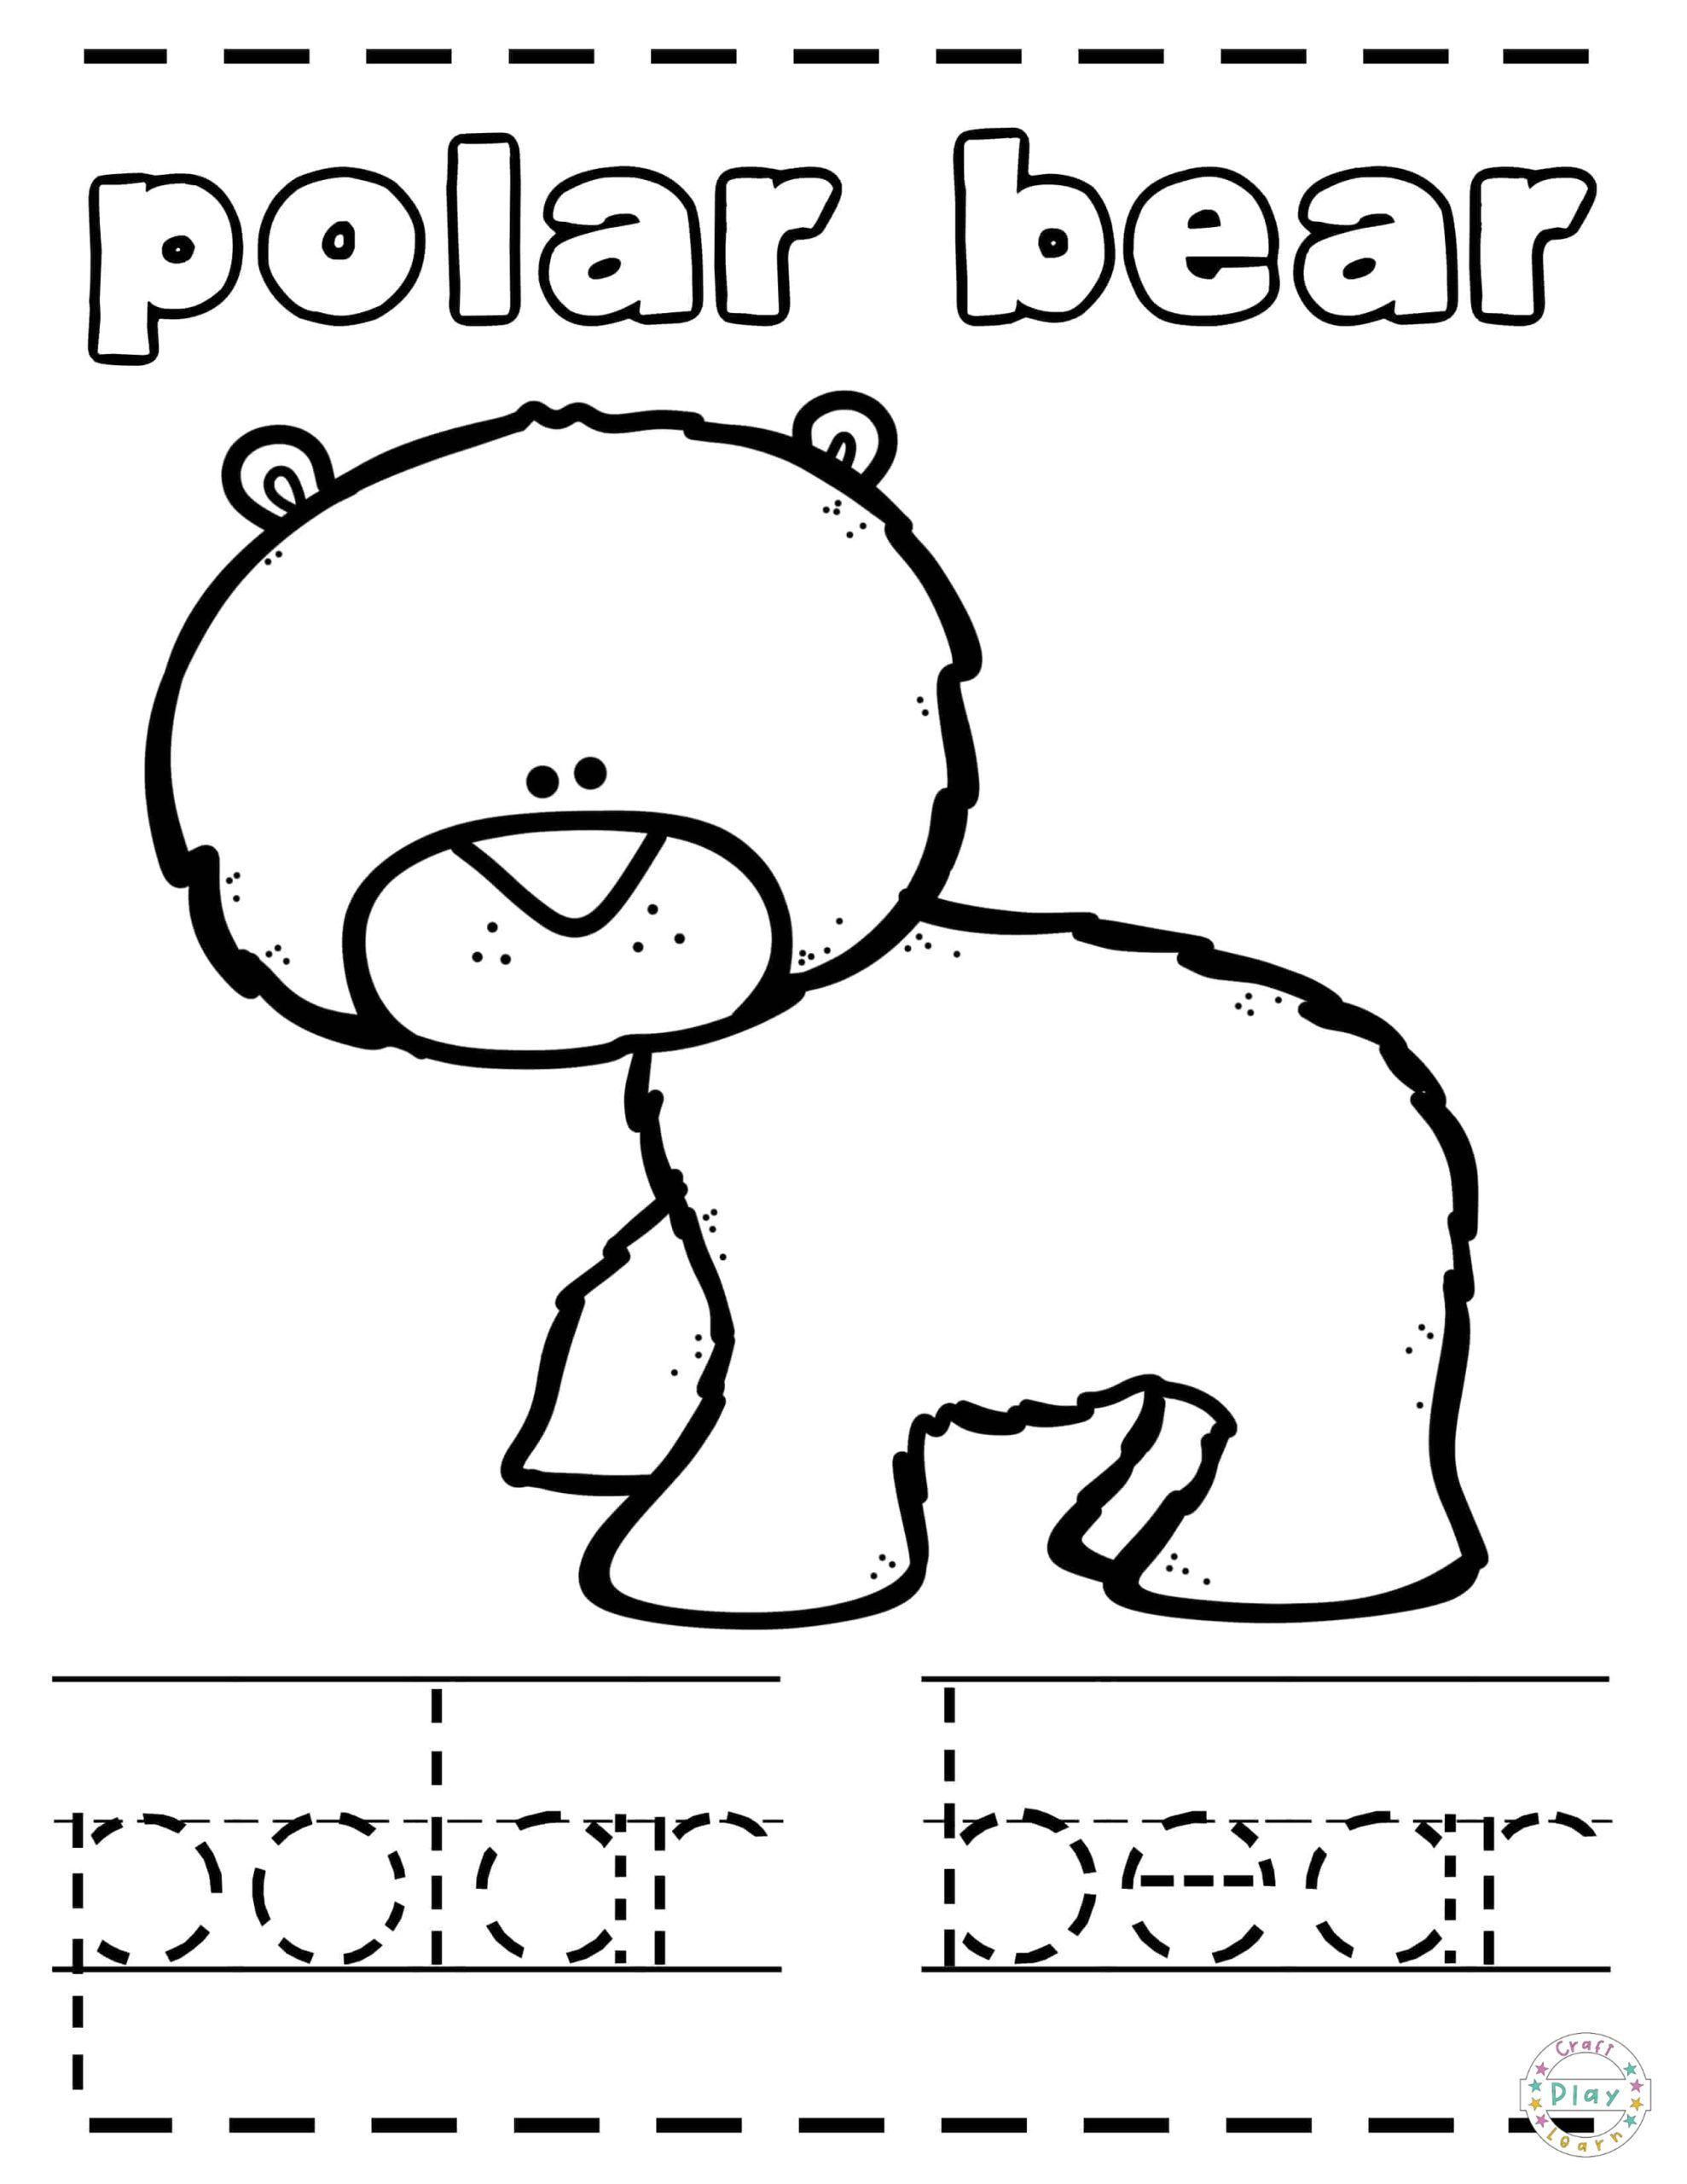 Arctic Coloring Pages For Kids Craft Play Learn In 2020 Preschool Coloring Pages Coloring Pages For Kids Animal Worksheets [ 2560 x 1978 Pixel ]